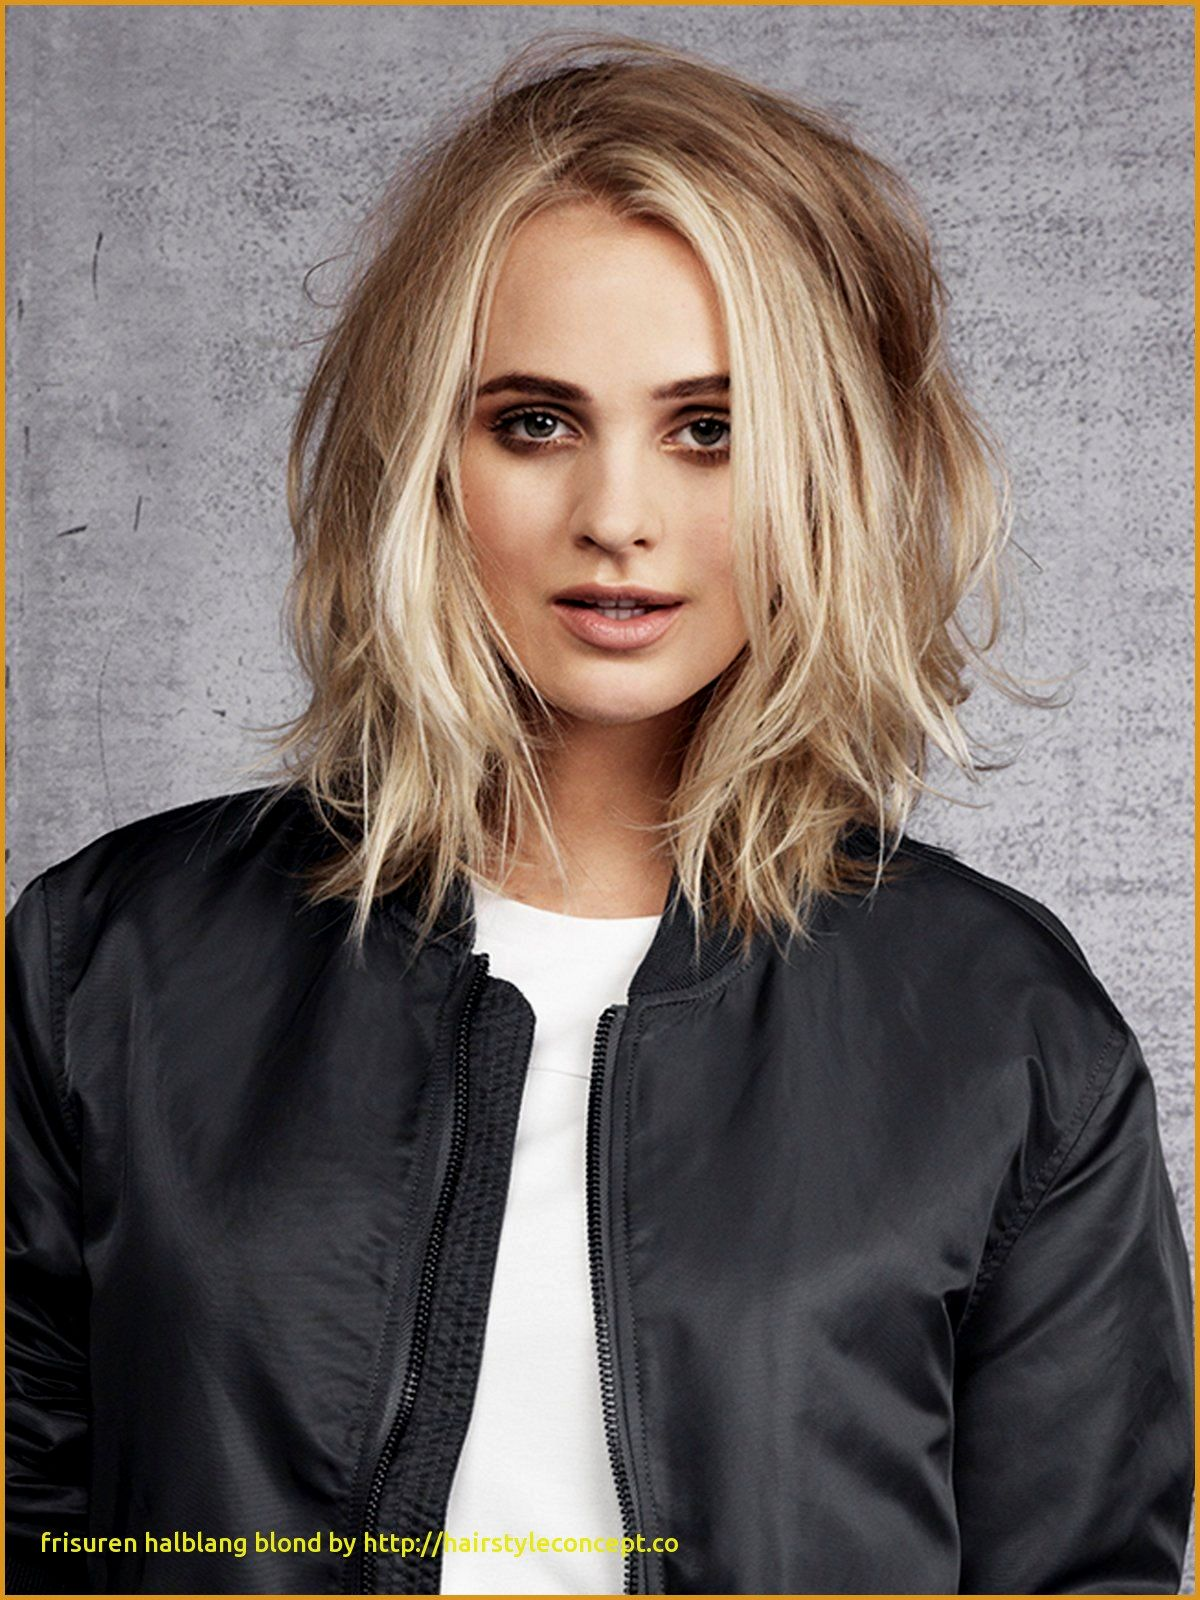 lovely hairstyles 2018 half length decoration-Cute hairstyles 2018 half-length inspiration